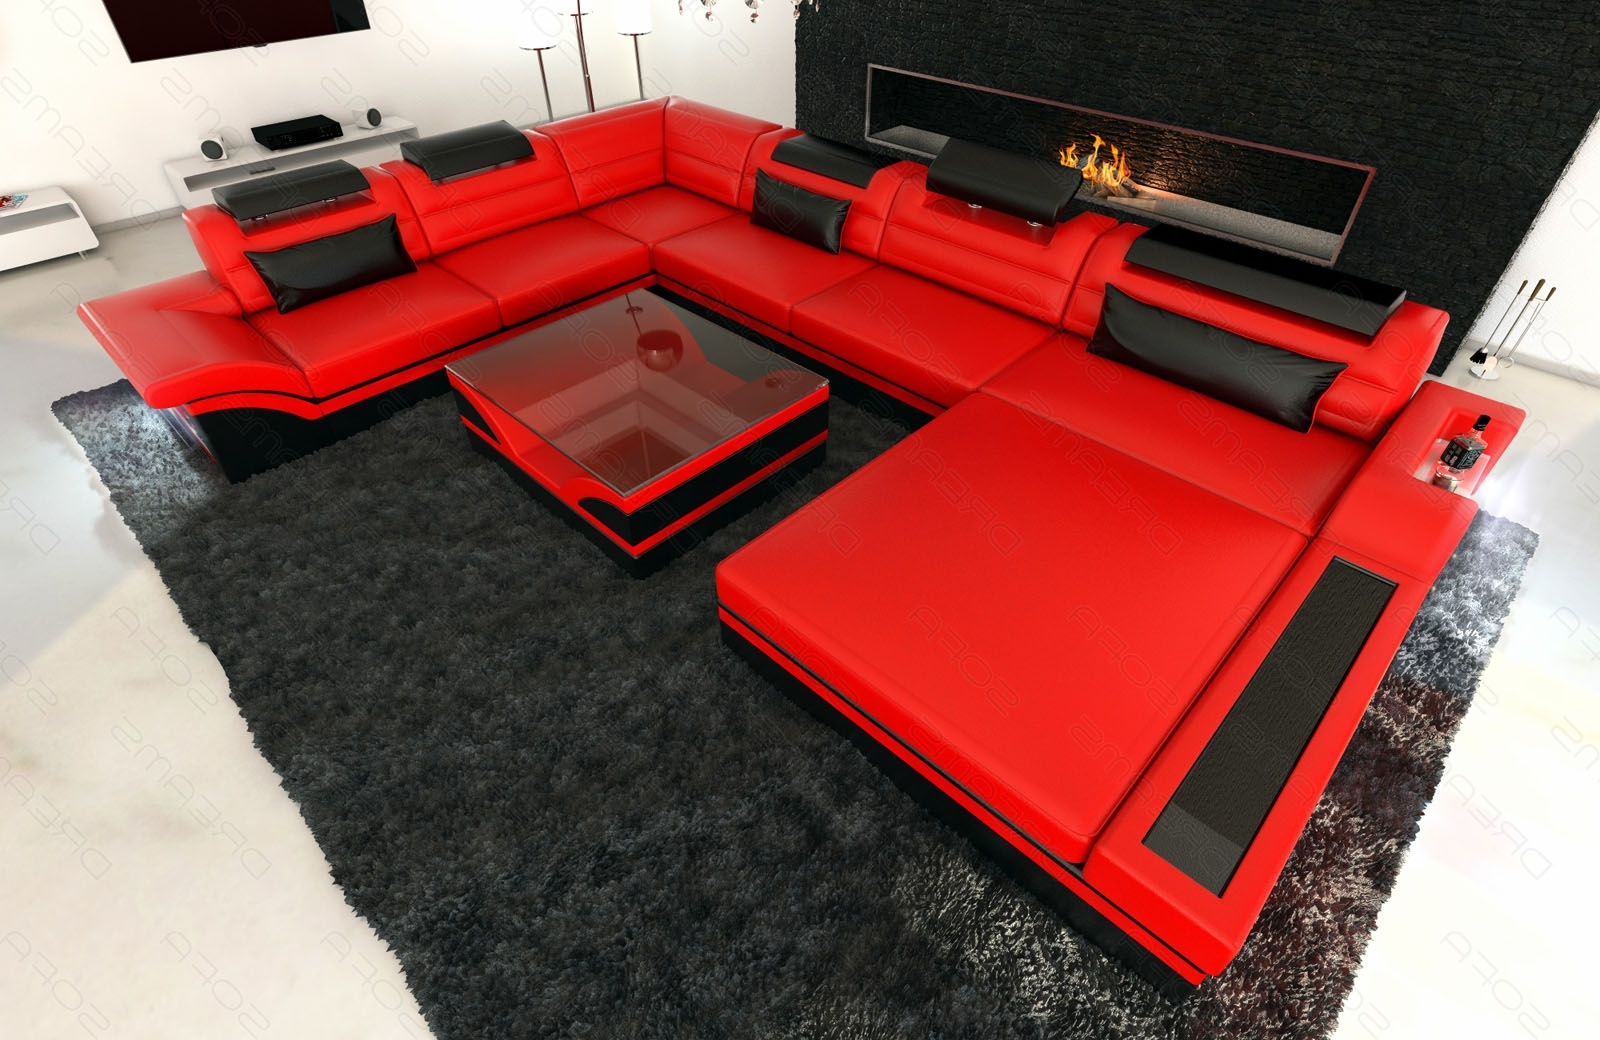 Sectional Sofas At Ebay In Current Design Sectional Sofa Mezzo Xxl With Led Lights Red Black (View 11 of 20)